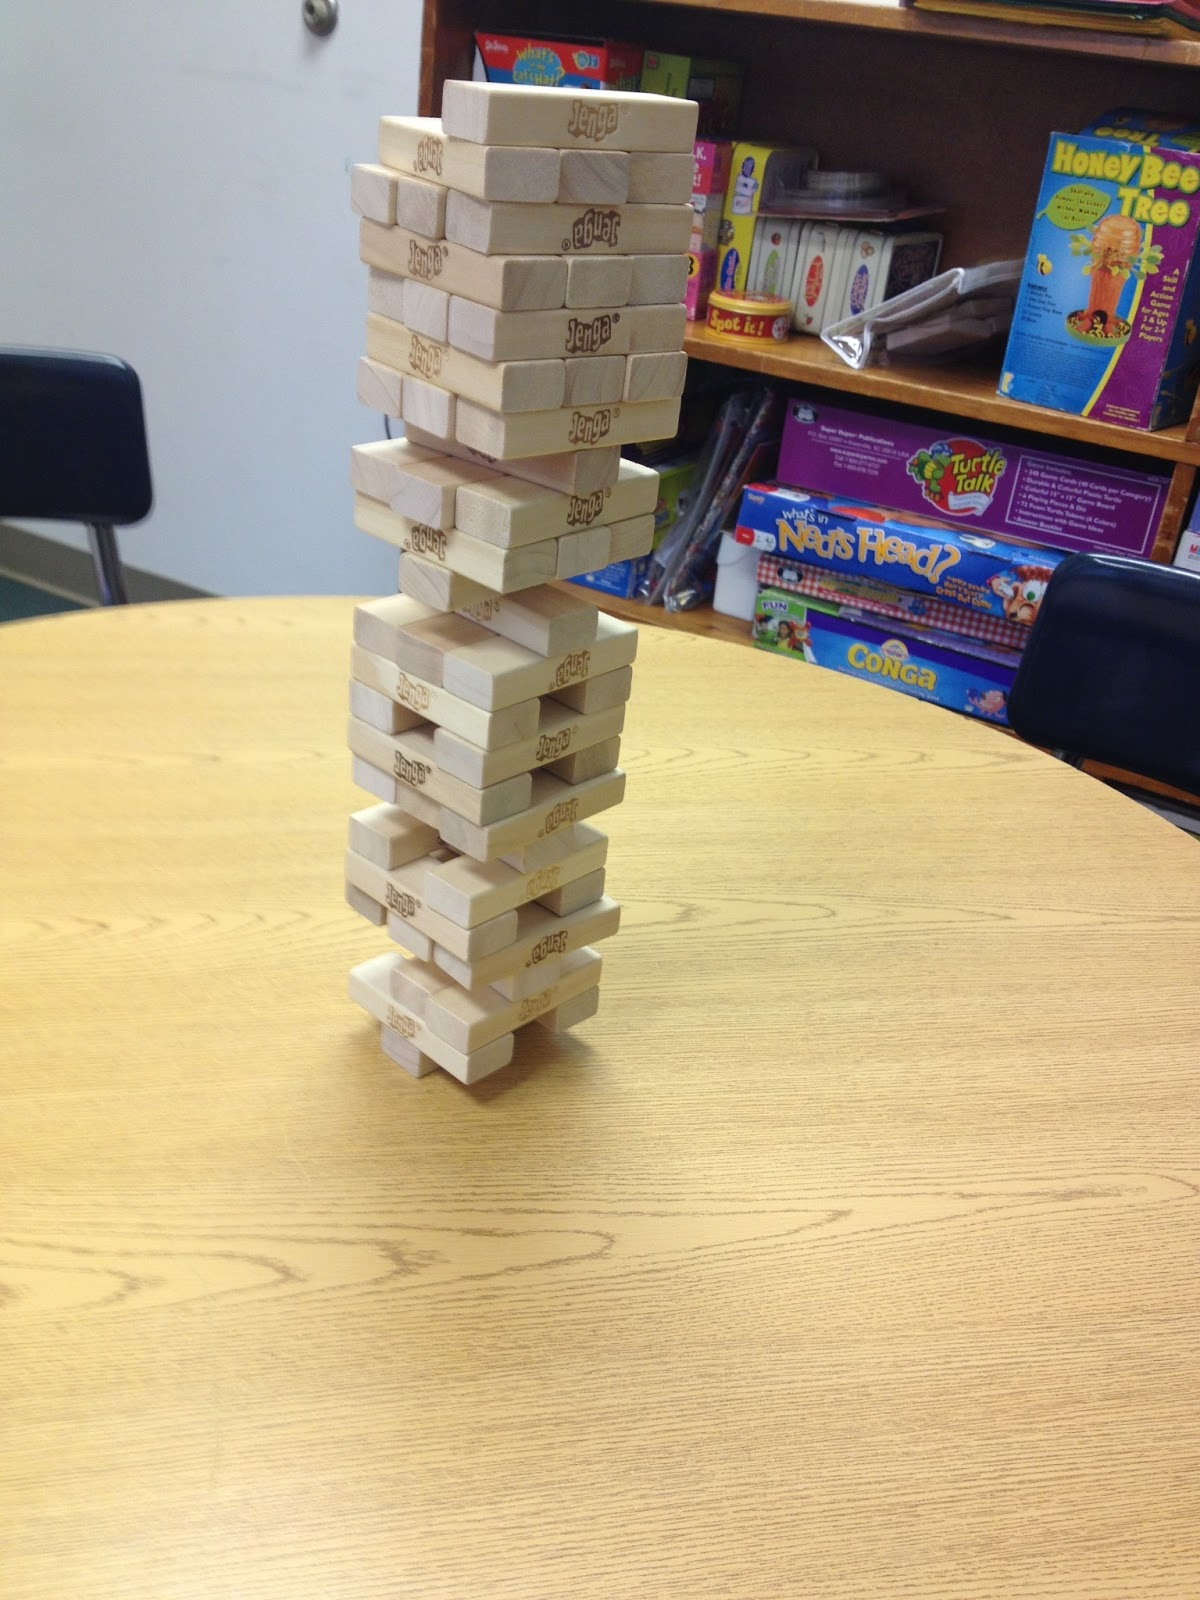 live love speech jenga and other fun games